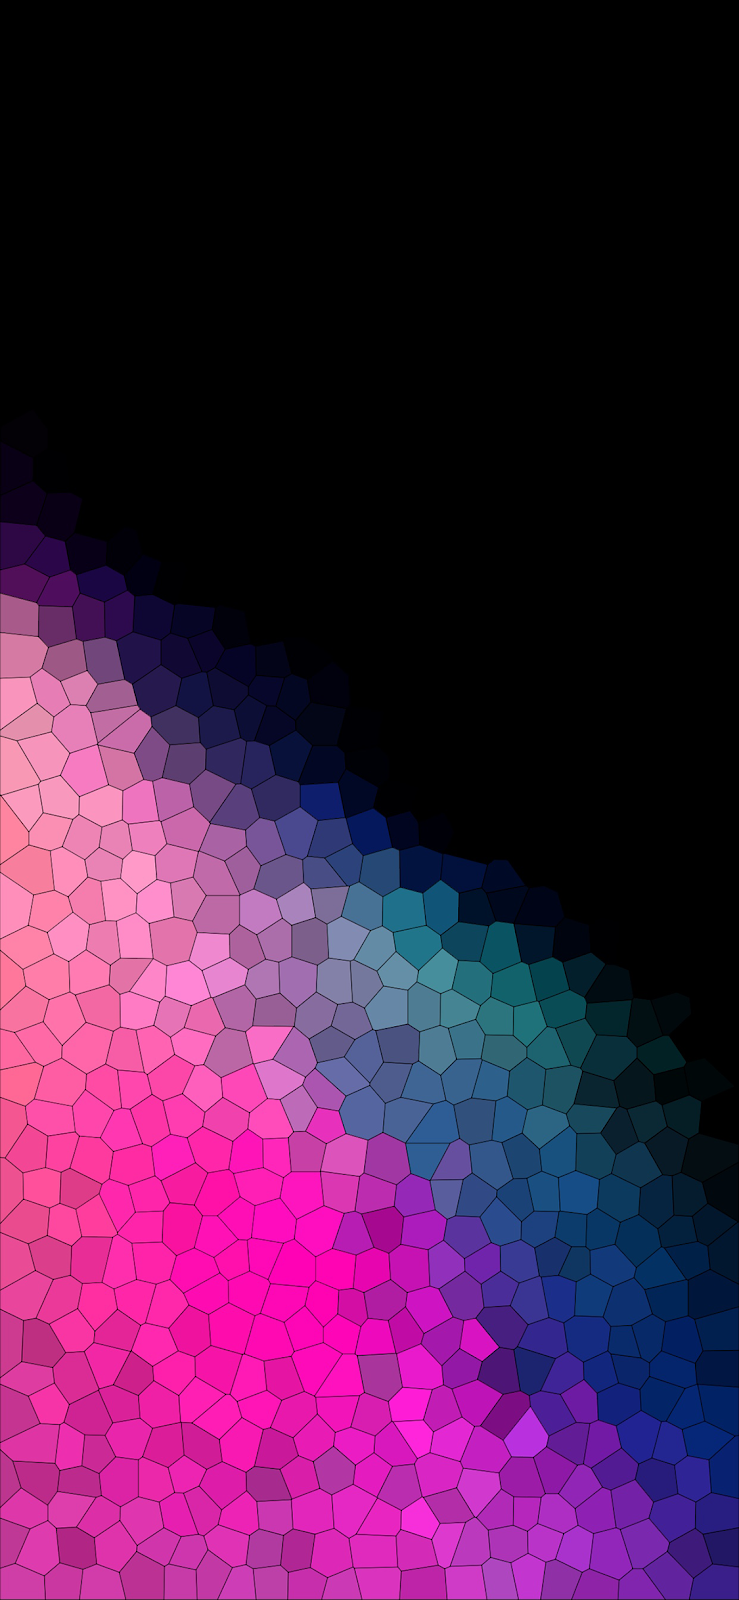 Mosaic (iPhone X) #wallpaper #iphone #android #background #followme Hd